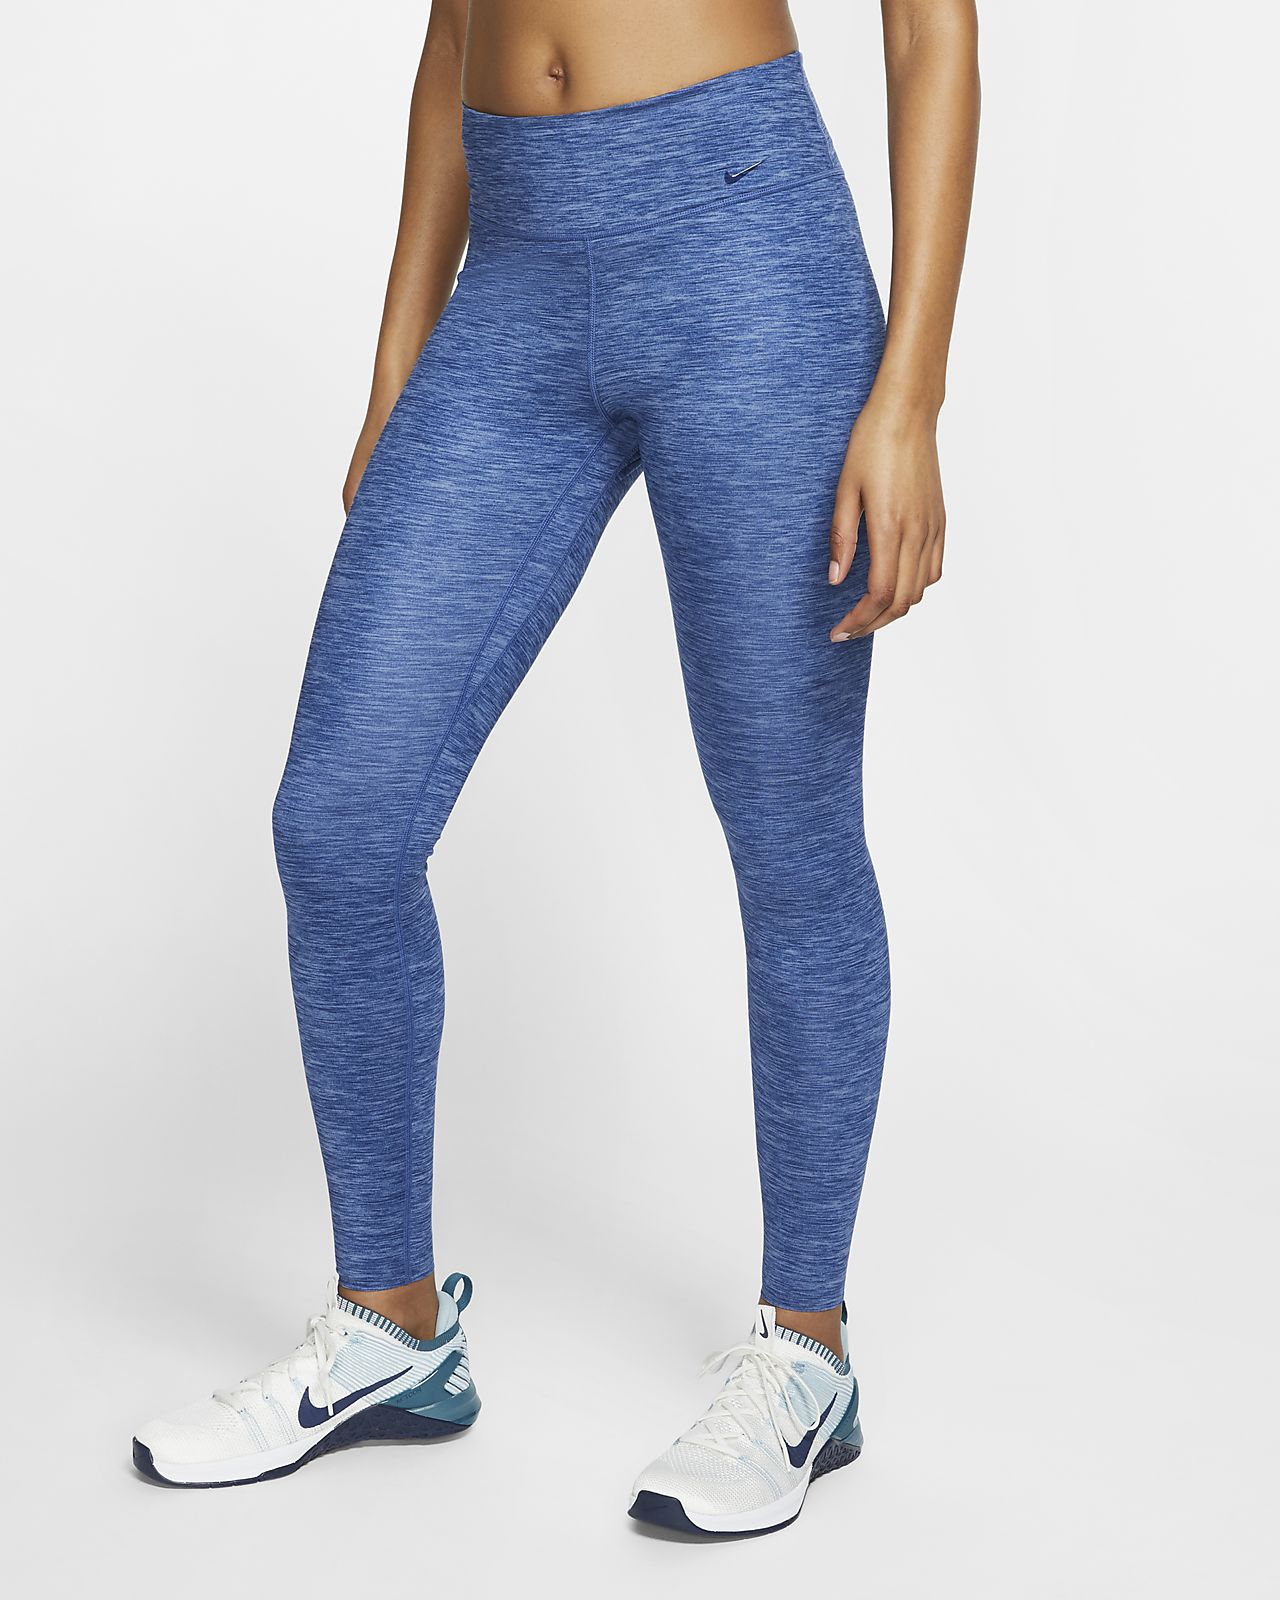 Nike One Luxe 女款緊身褲